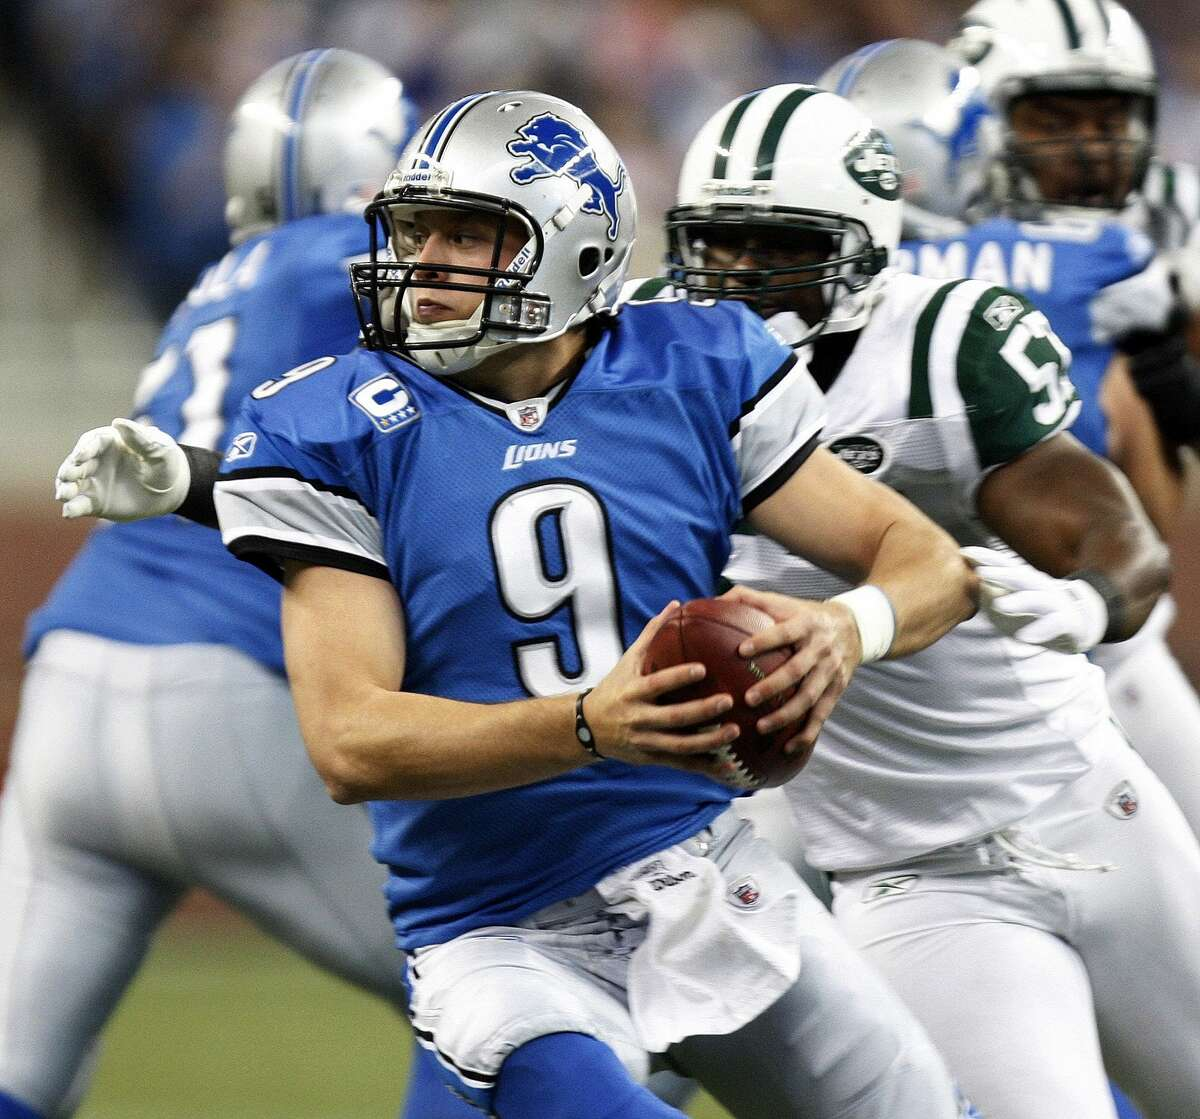 Lions' QB Matthew Stafford holds most franchise passing records including yards (30,303), completions (2,634), attempts (4,285) and touchdowns (187). (Detroit Free Press photo)